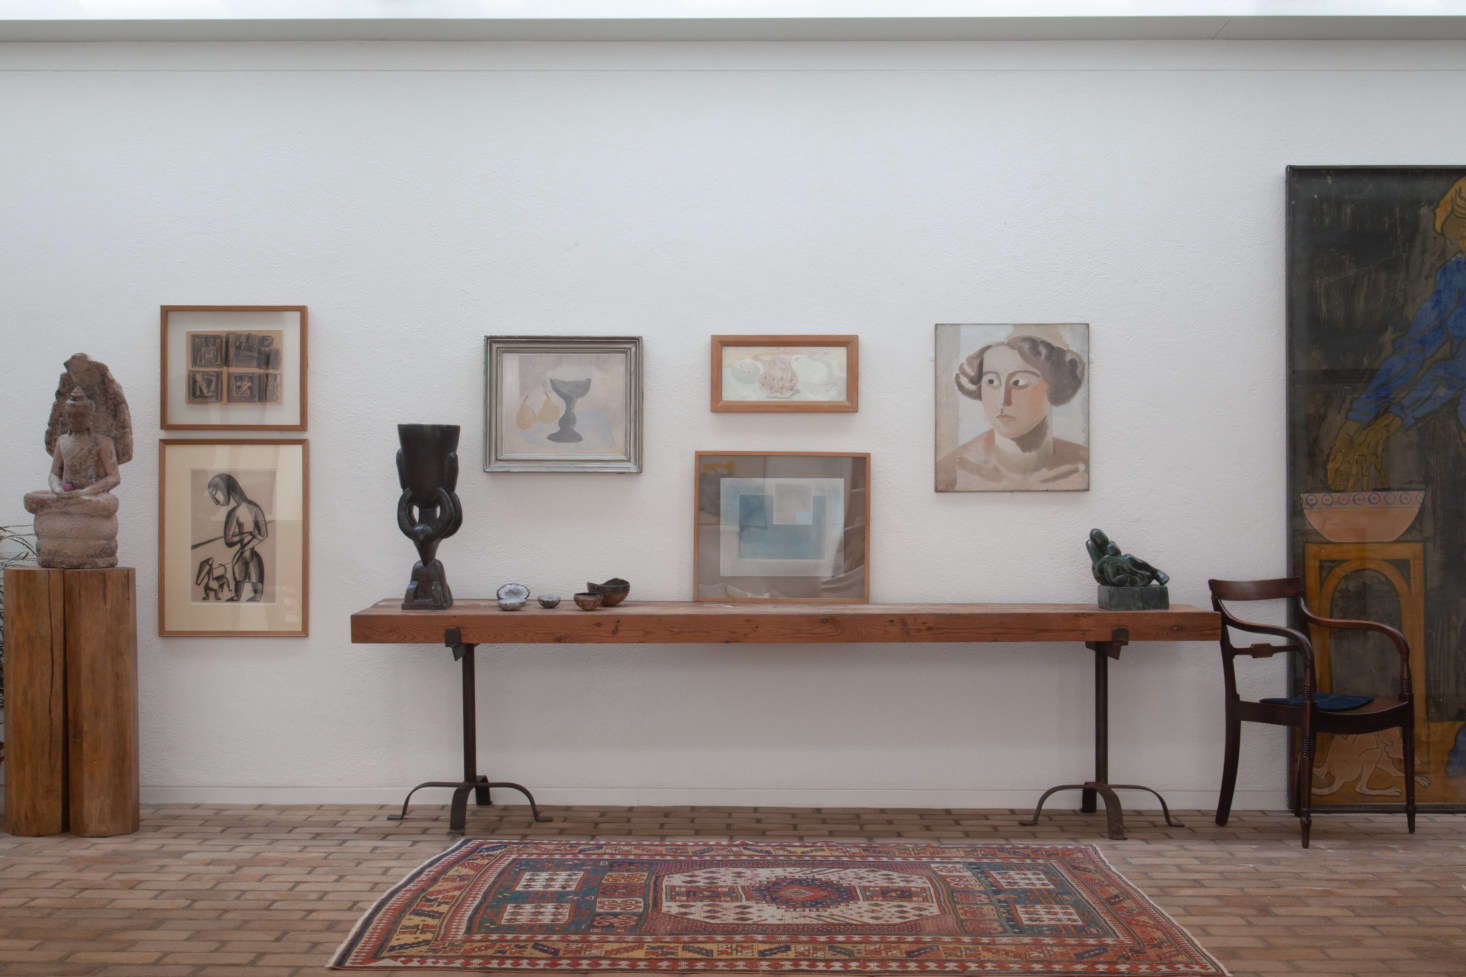 The artworks above include Ben Nicholson&#8